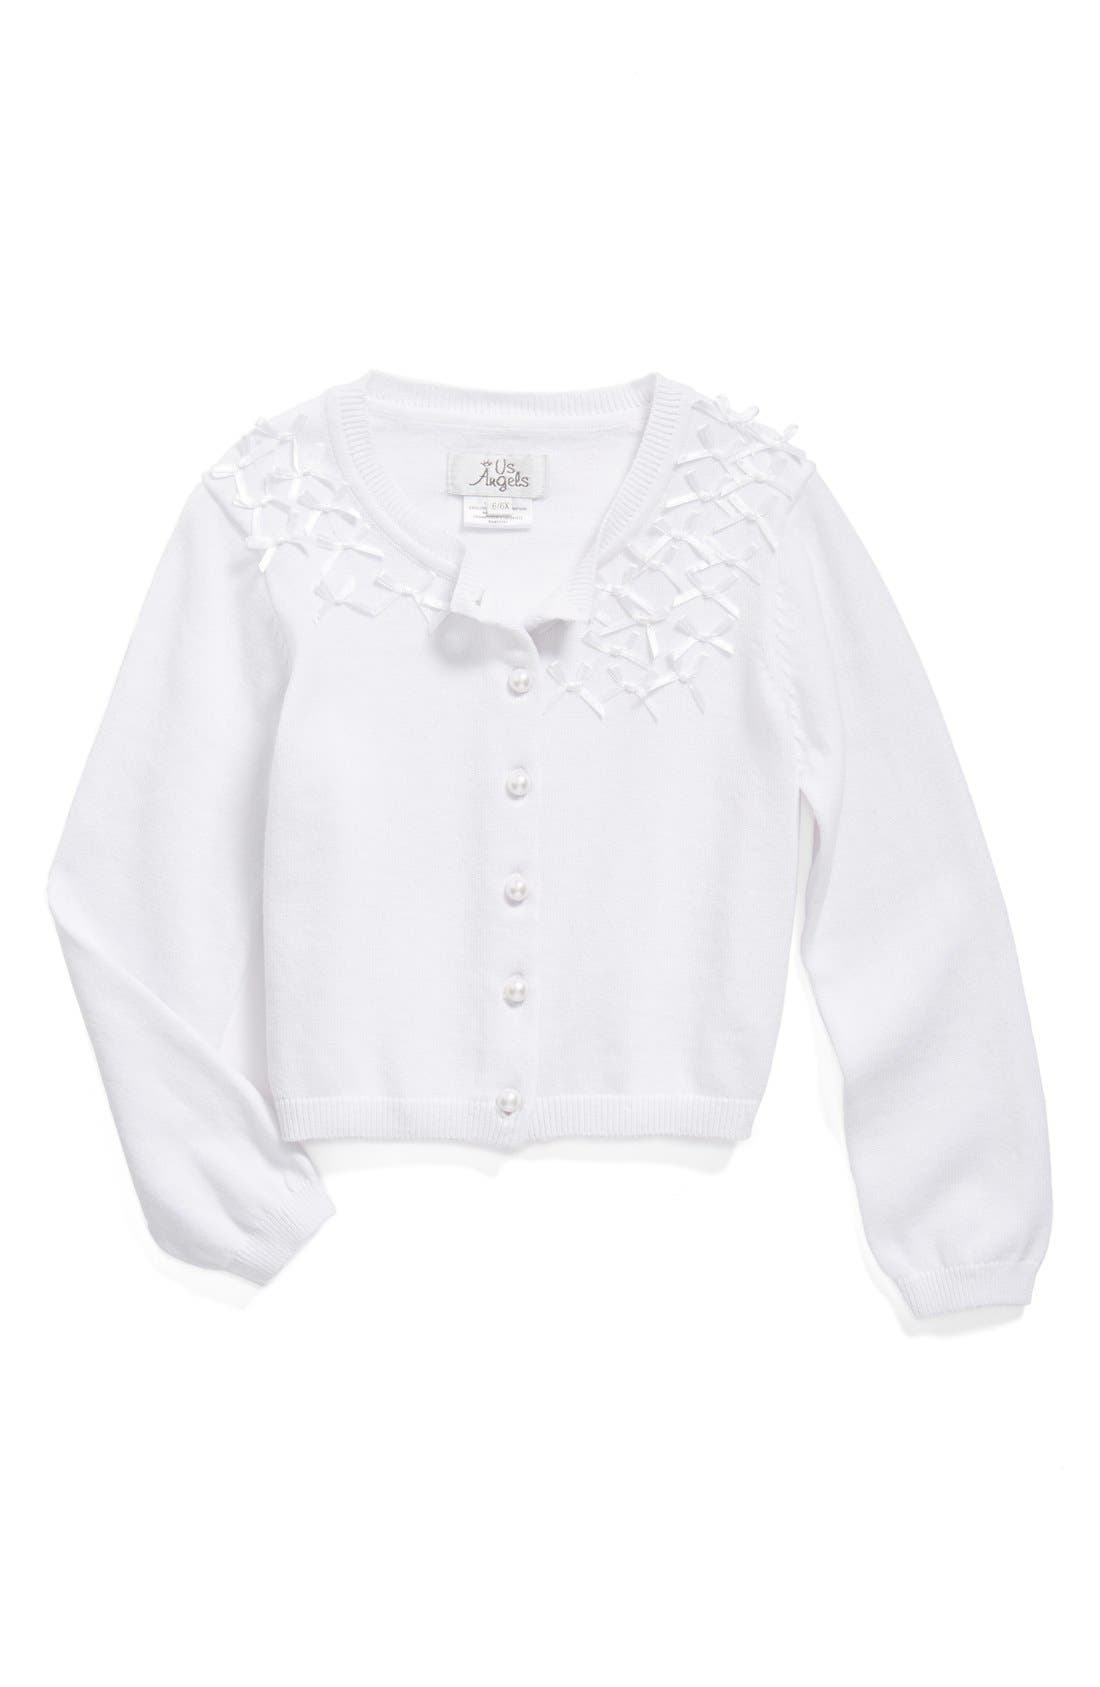 Alternate Image 1 Selected - Us Angels Communion Cardigan Sweater (Toddler Girls, Little Girls & Big Girls)